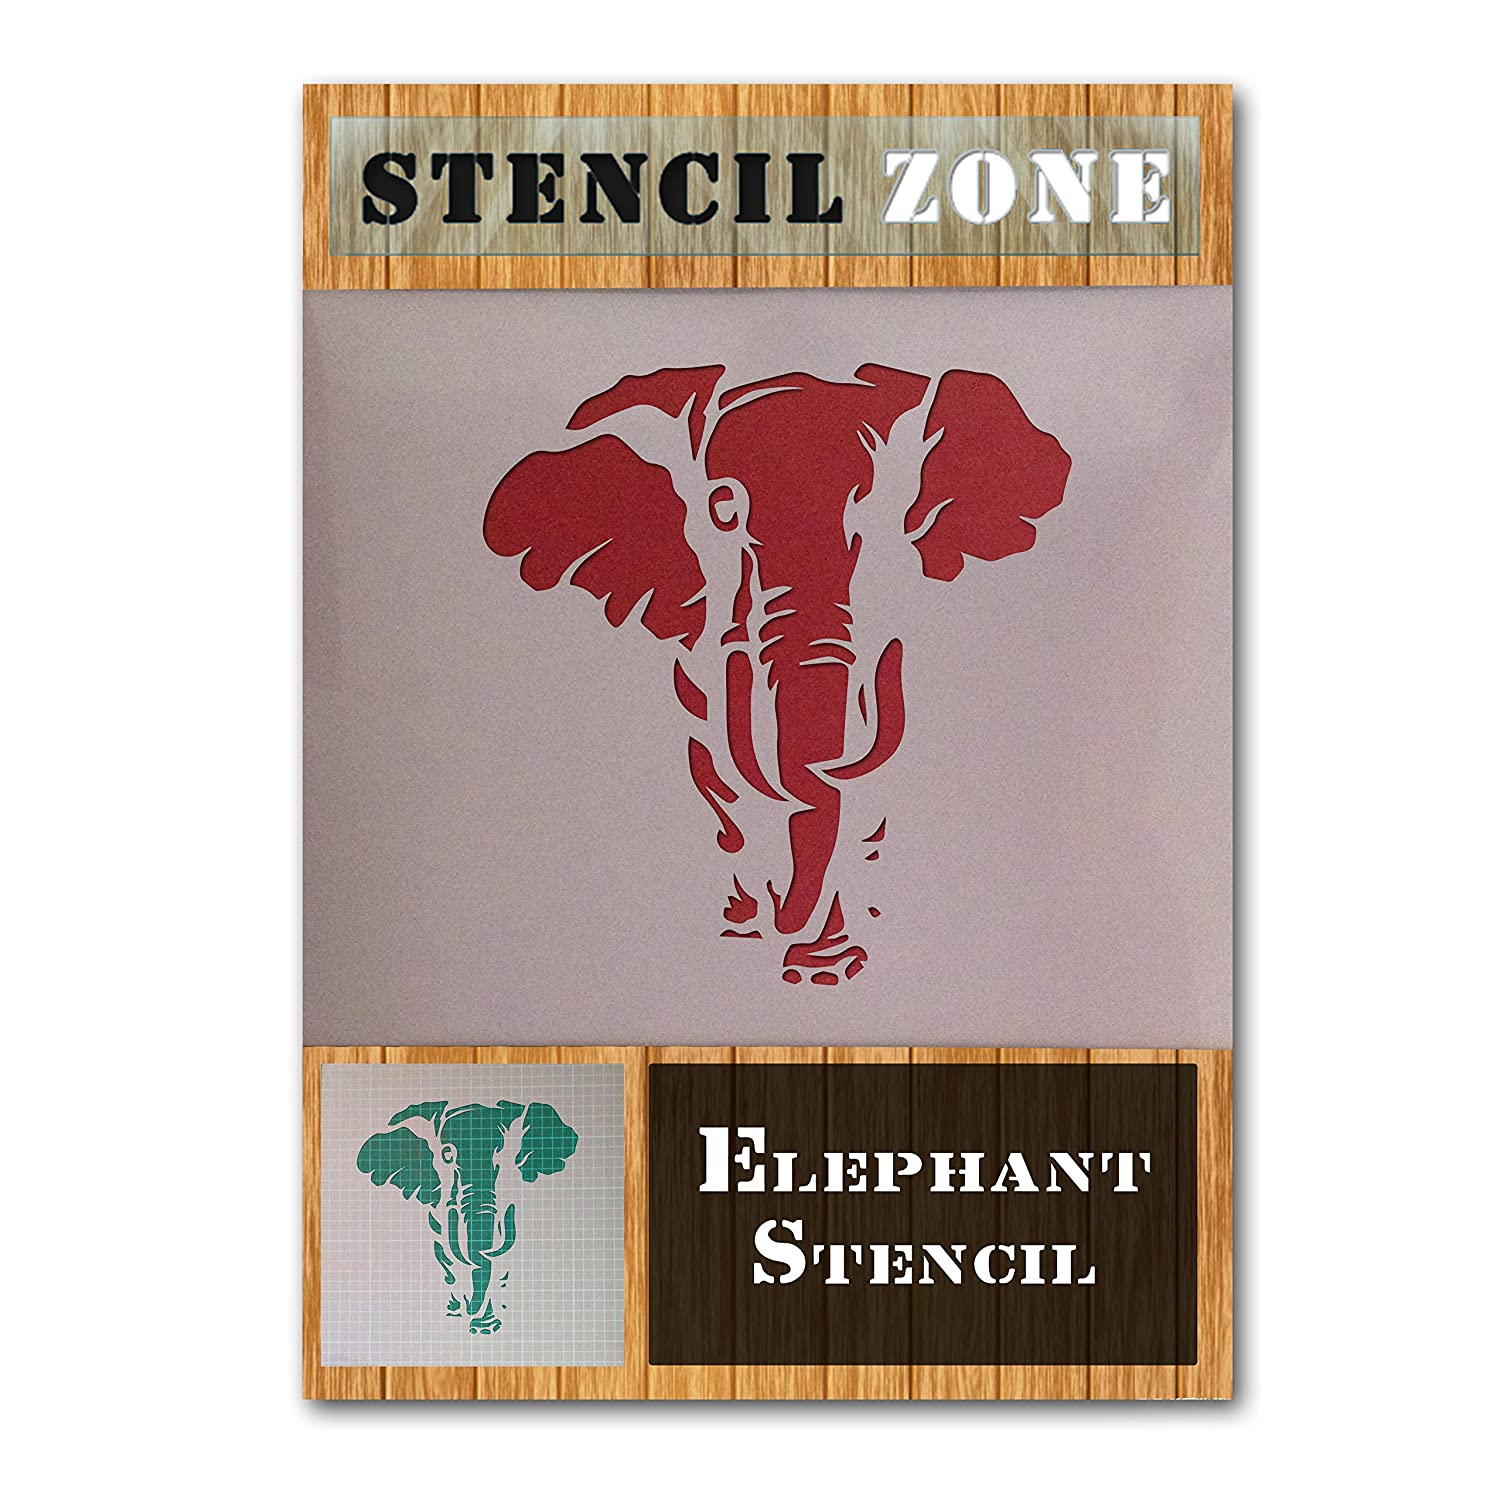 Elephant Animal Face Trunk Mylar Airbrush Painting Wall Art Crafts Stencil 4 (A1 Size Stencil - Xlarge) STENCIL ZONE